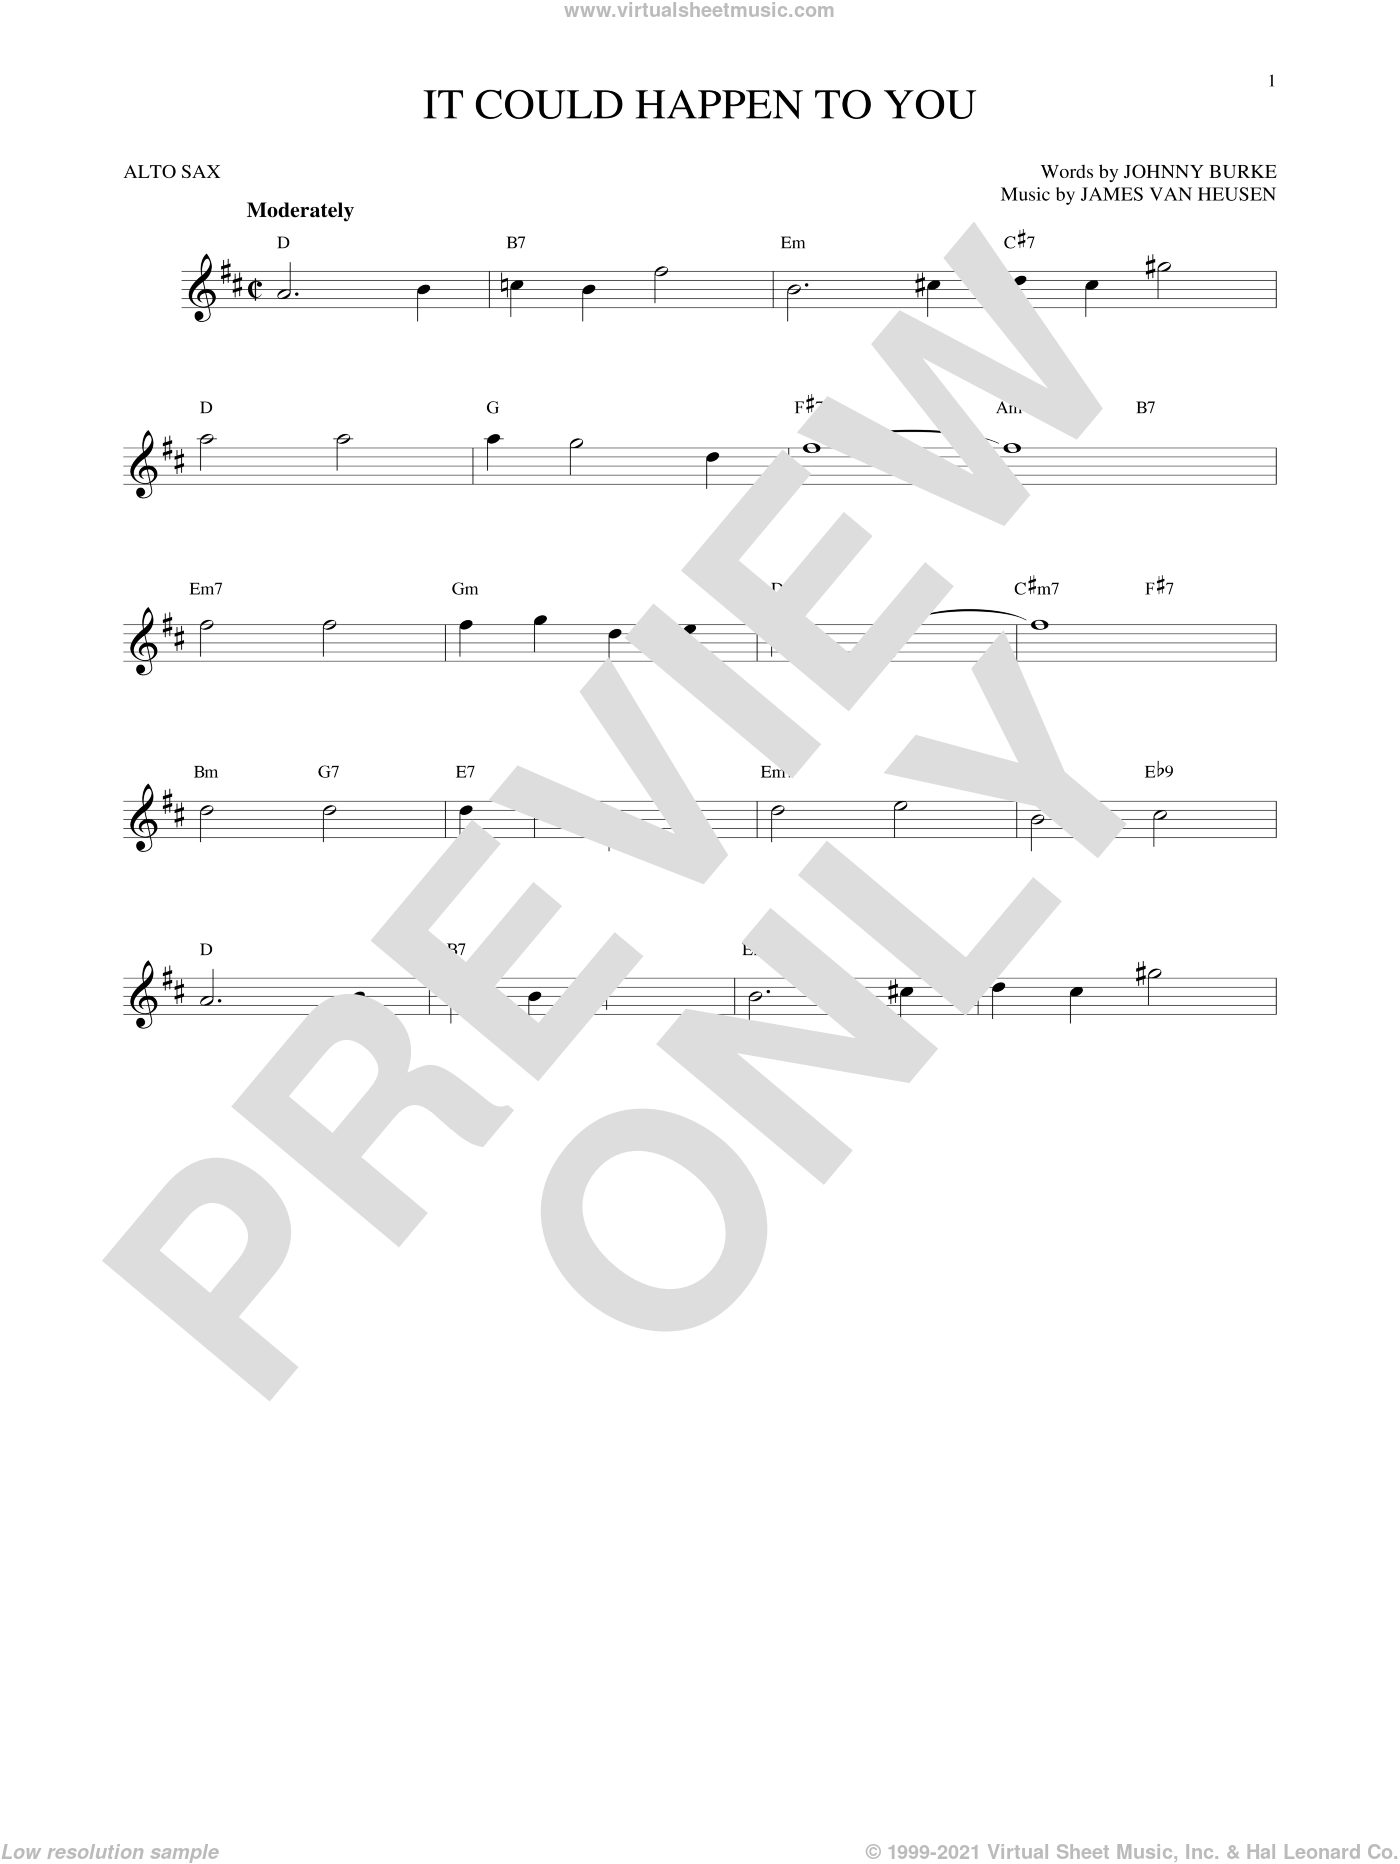 It Could Happen To You sheet music for alto saxophone solo by Jimmy van Heusen, June Christy and John Burke, intermediate alto saxophone. Score Image Preview.